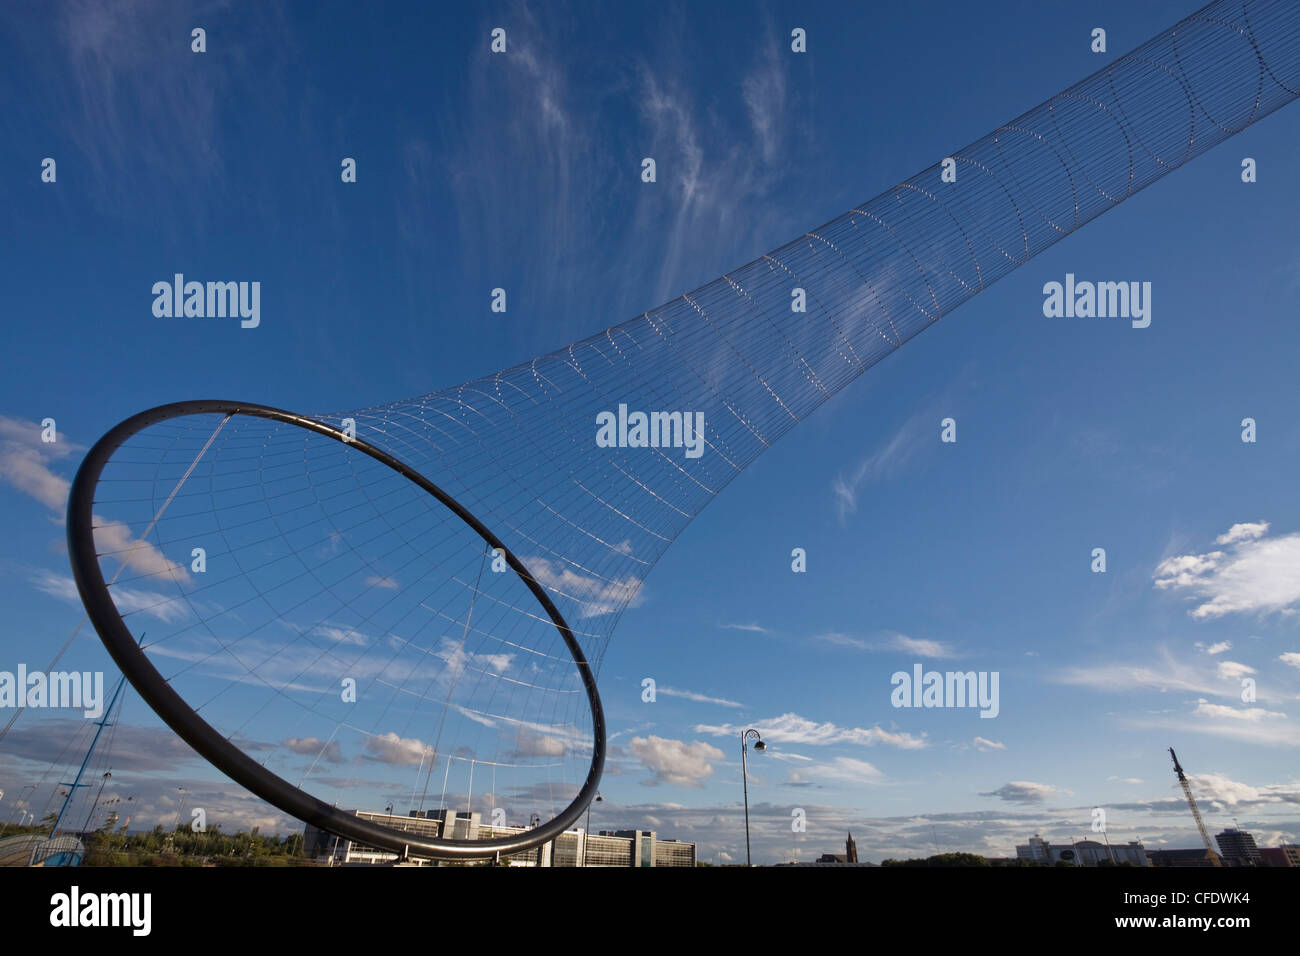 Temenos sculpture installed in 2010, by Anish Kapoor, Middlesbrough, Teeside, England, United Kingdom, Europe - Stock Image